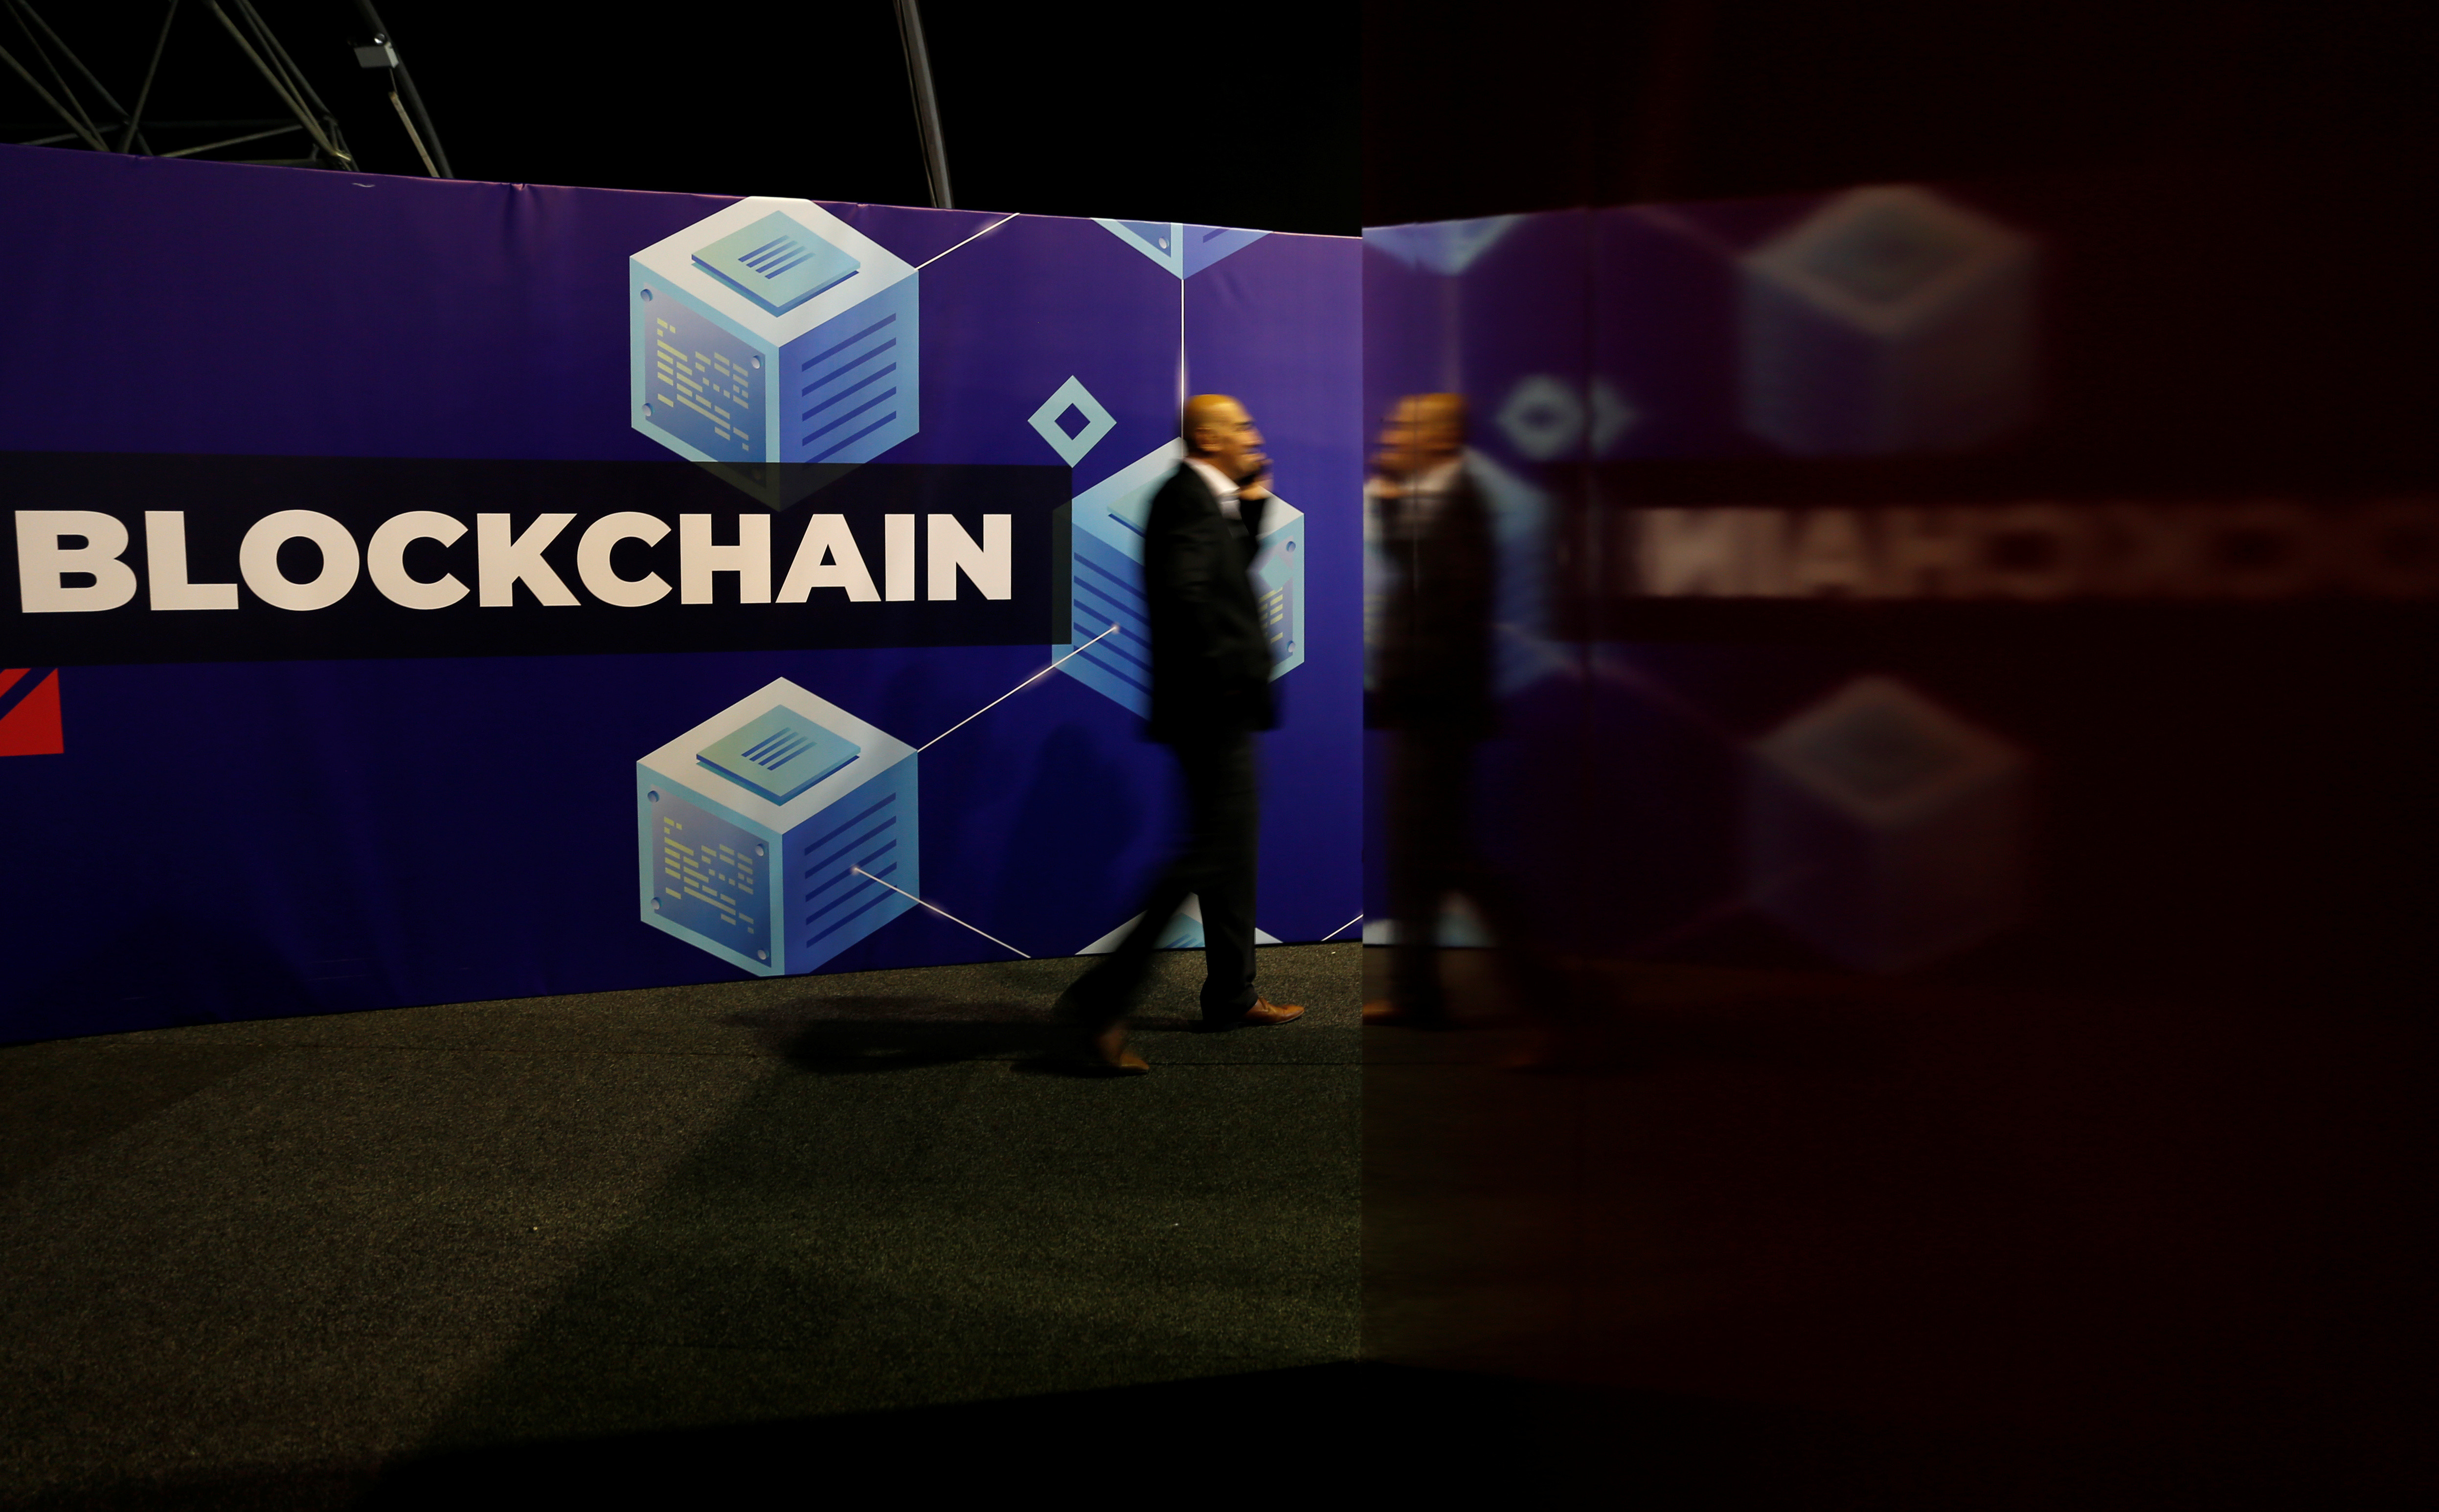 image of the Delta Summit, Malta's official Blockchain and Digital Innovation event promoting cryptocurrency, in Ta' Qali, Malta